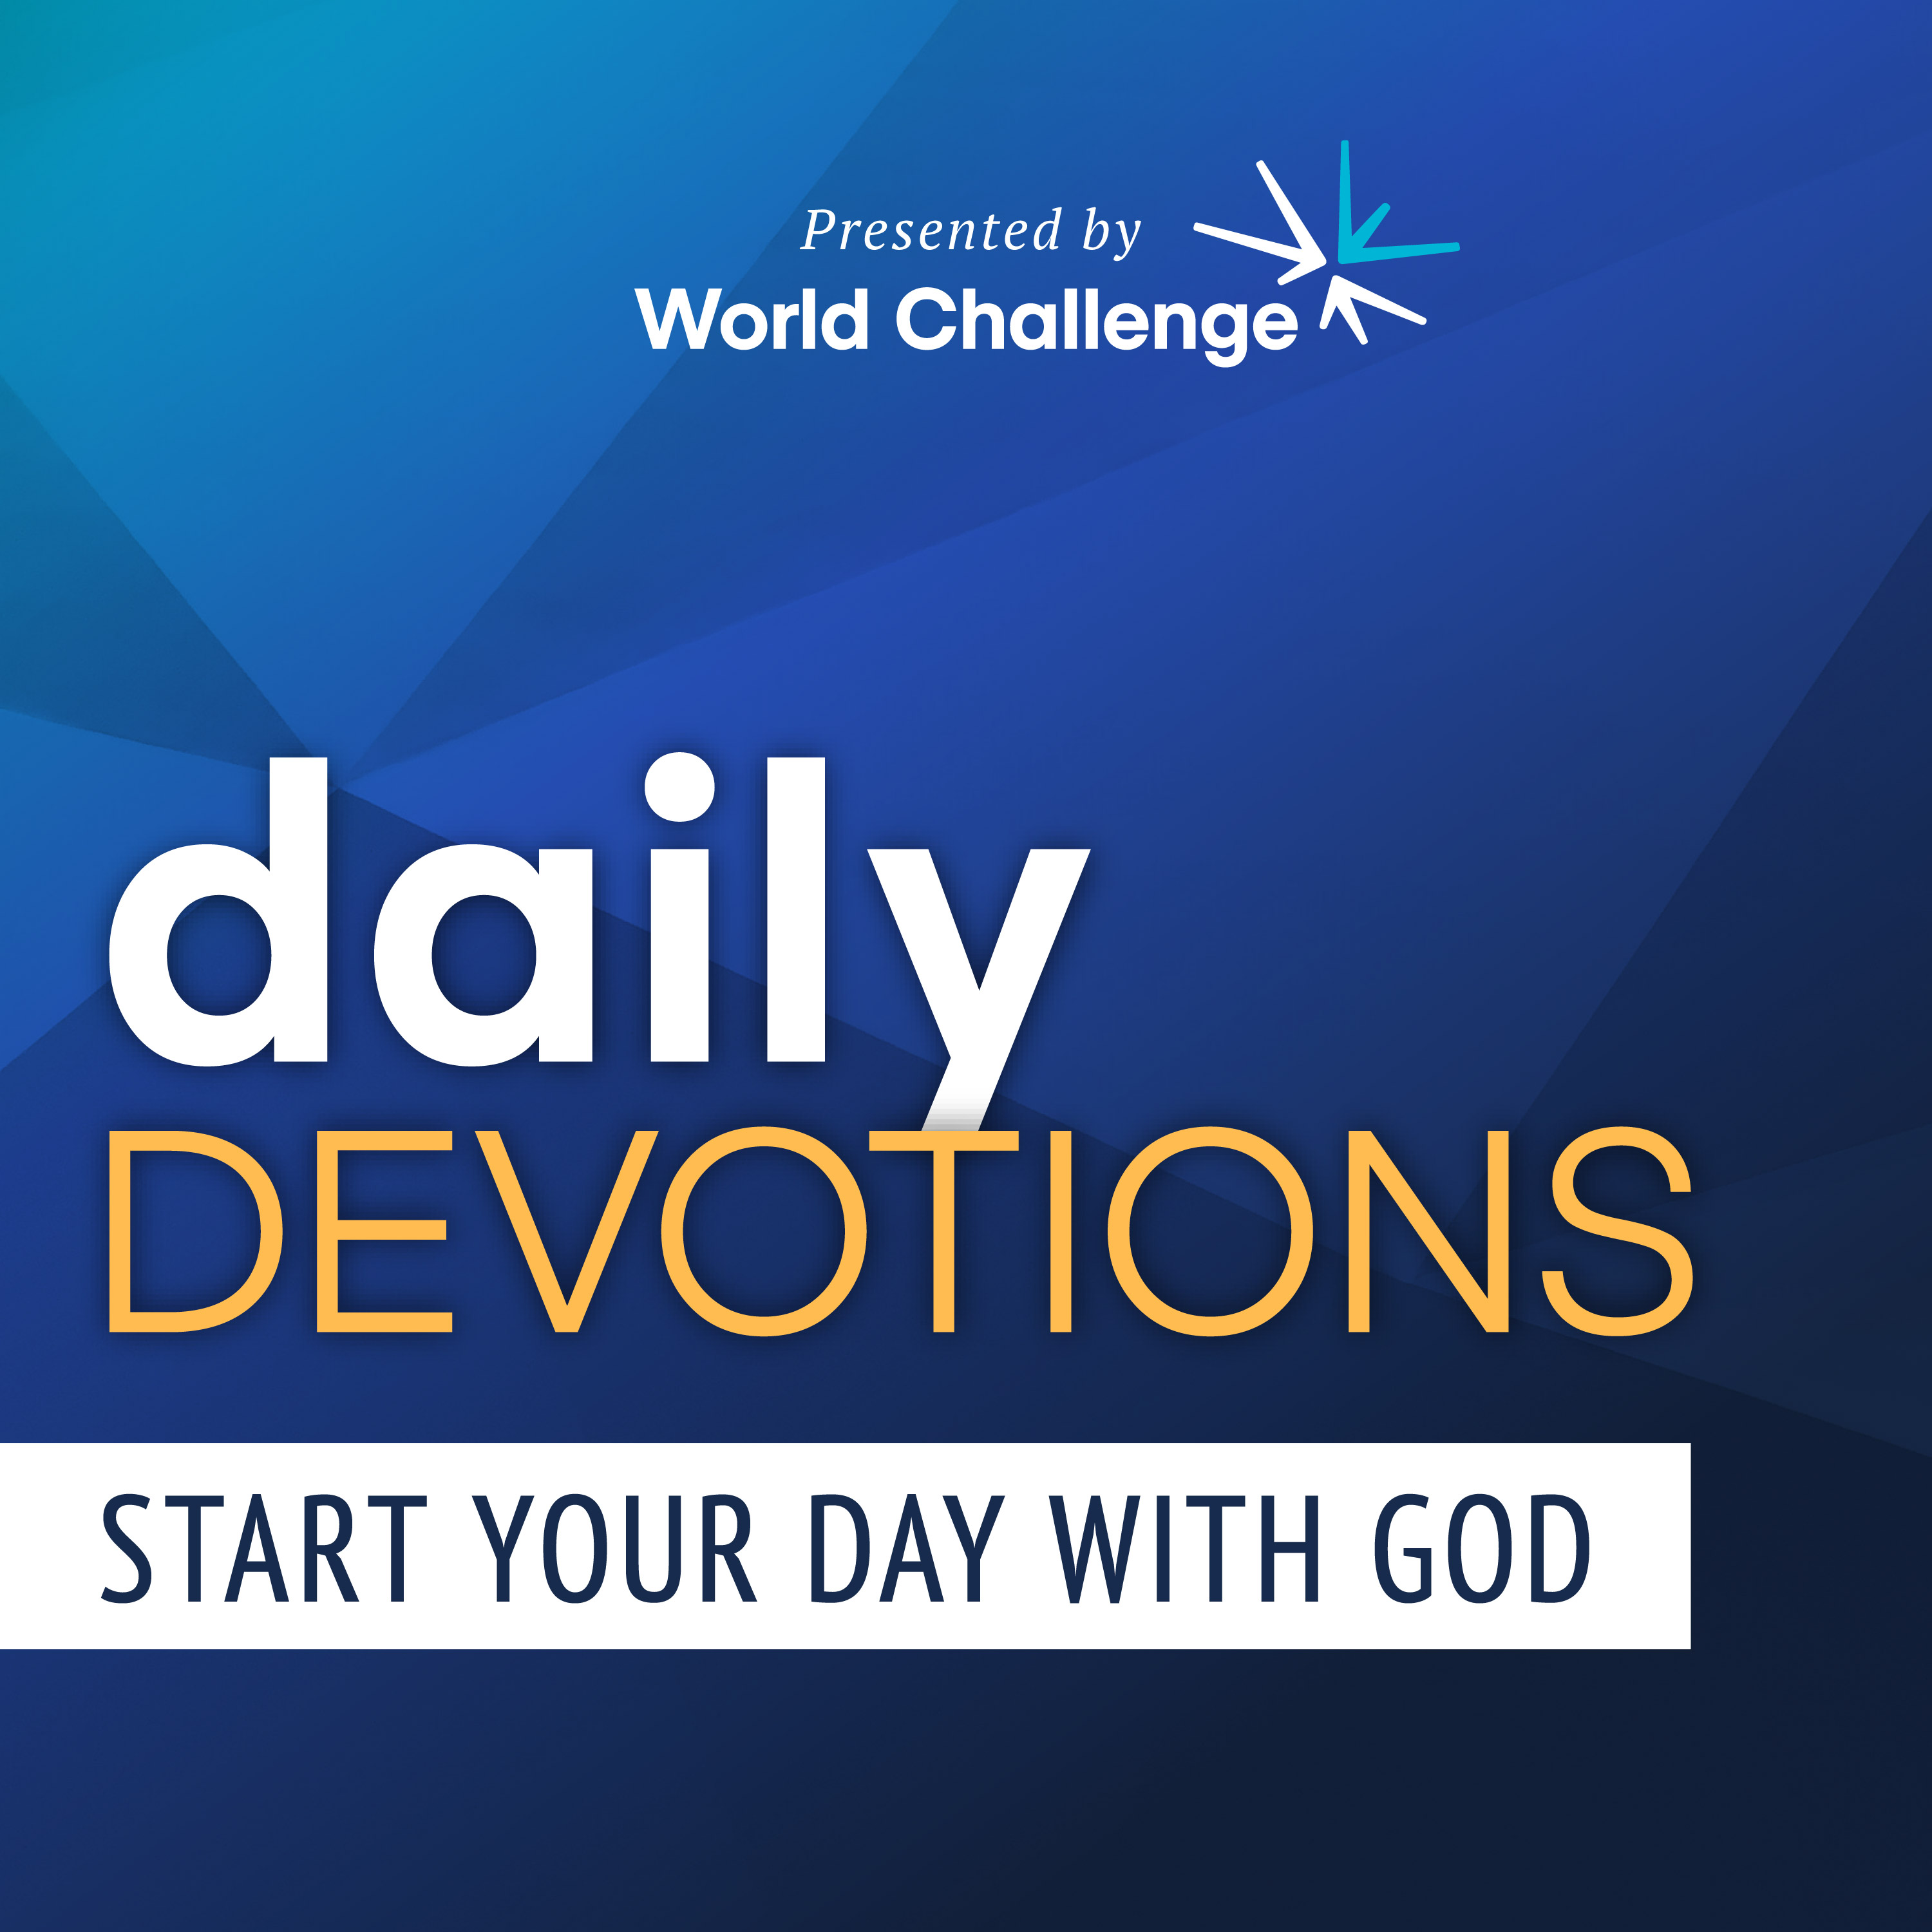 Artwork for podcast World Challenge Daily Devotions